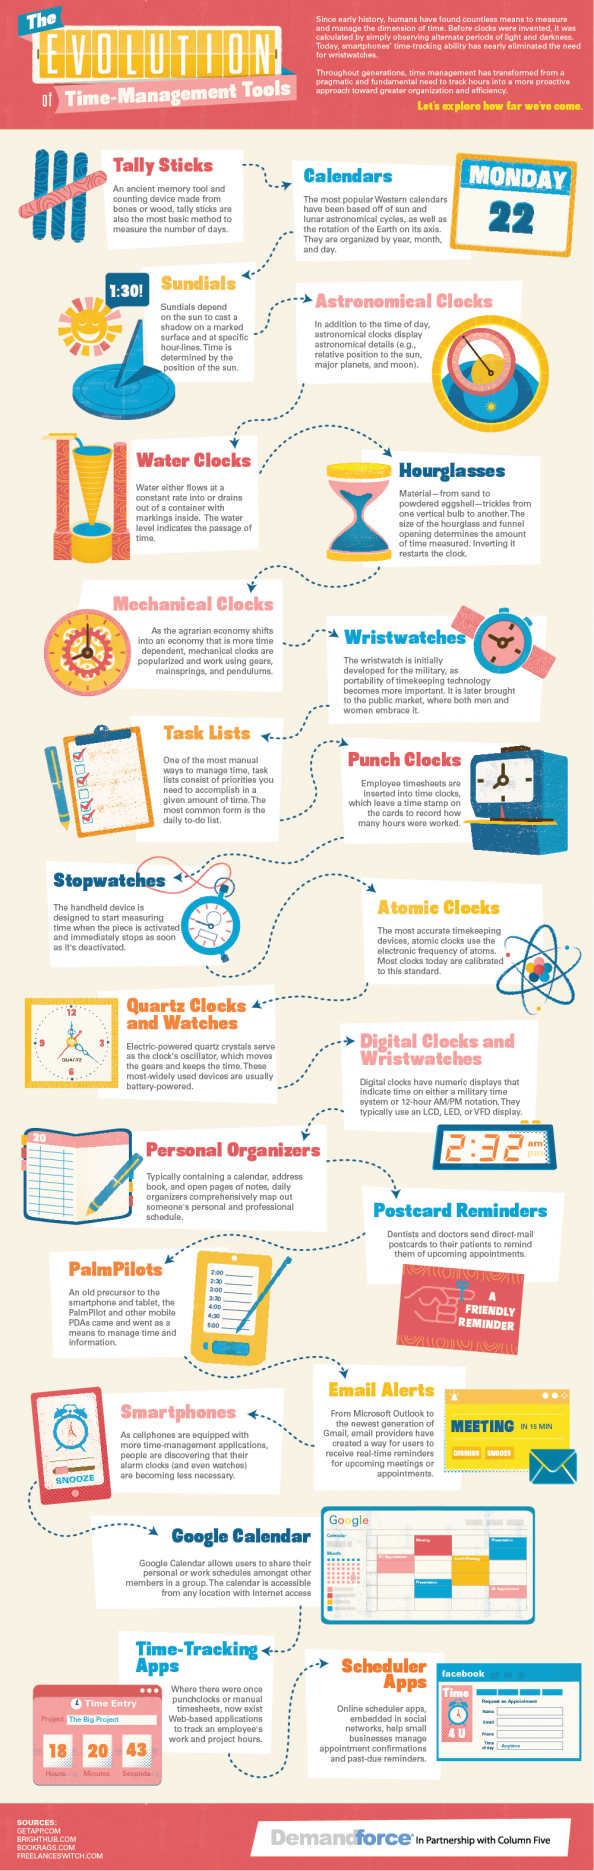 The Evolution of Time-Management Tools Infographic